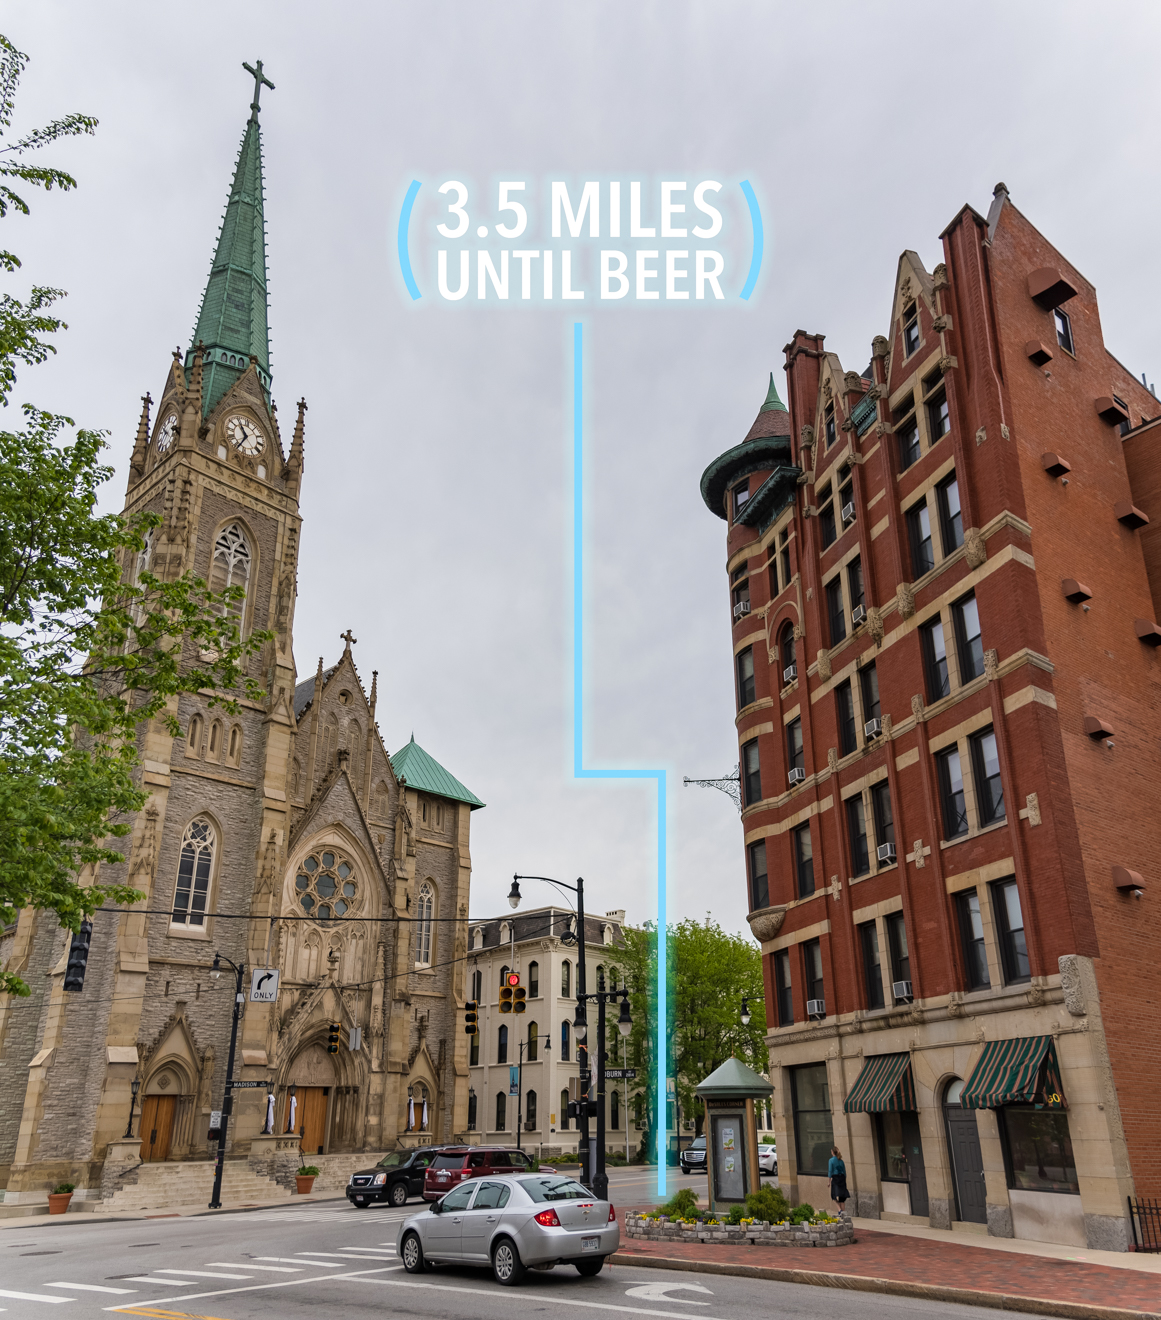 At DeSales Corner (the intersection of Woodburn Avenue and Madison Road), turn right onto Madison Road. MadTree is also on this road, but you still have a few miles to go. / Image: Phil Armstrong, Cincinnati Refined // Published: 4.25.17